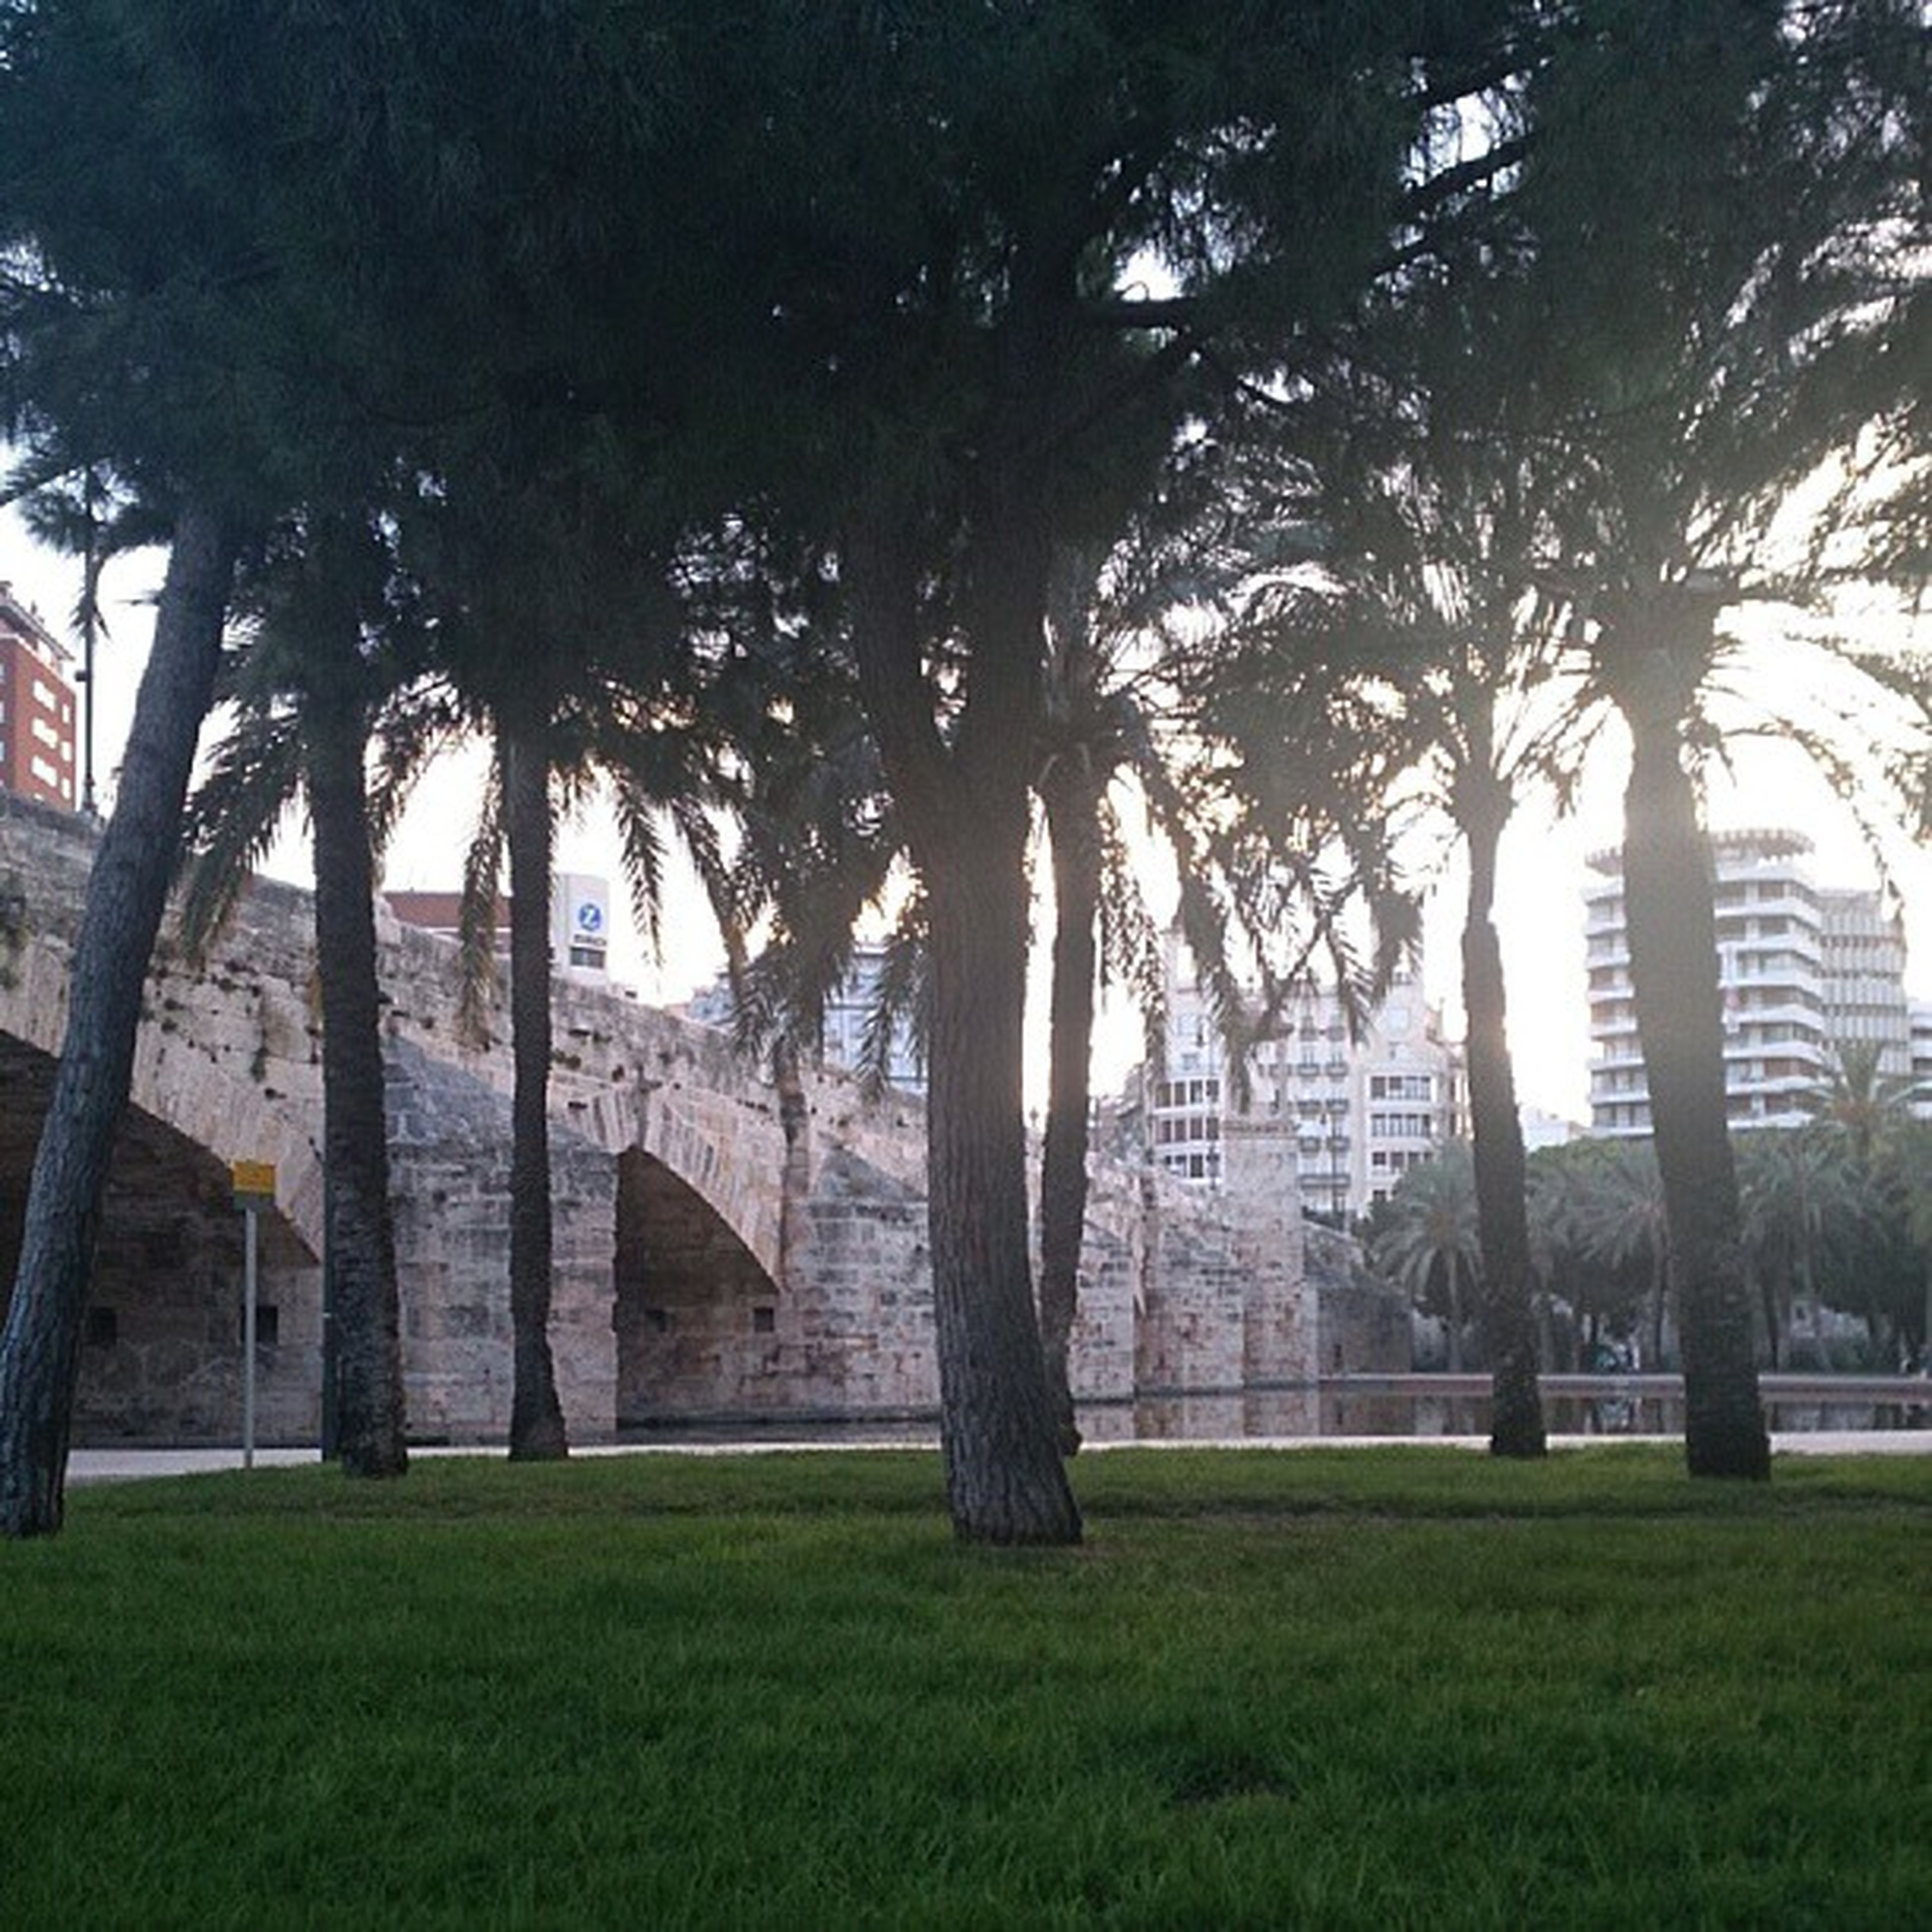 architecture, built structure, grass, tree, building exterior, lawn, green color, park - man made space, famous place, travel destinations, tree trunk, growth, arch, architectural column, sky, travel, tourism, palm tree, sunlight, outdoors